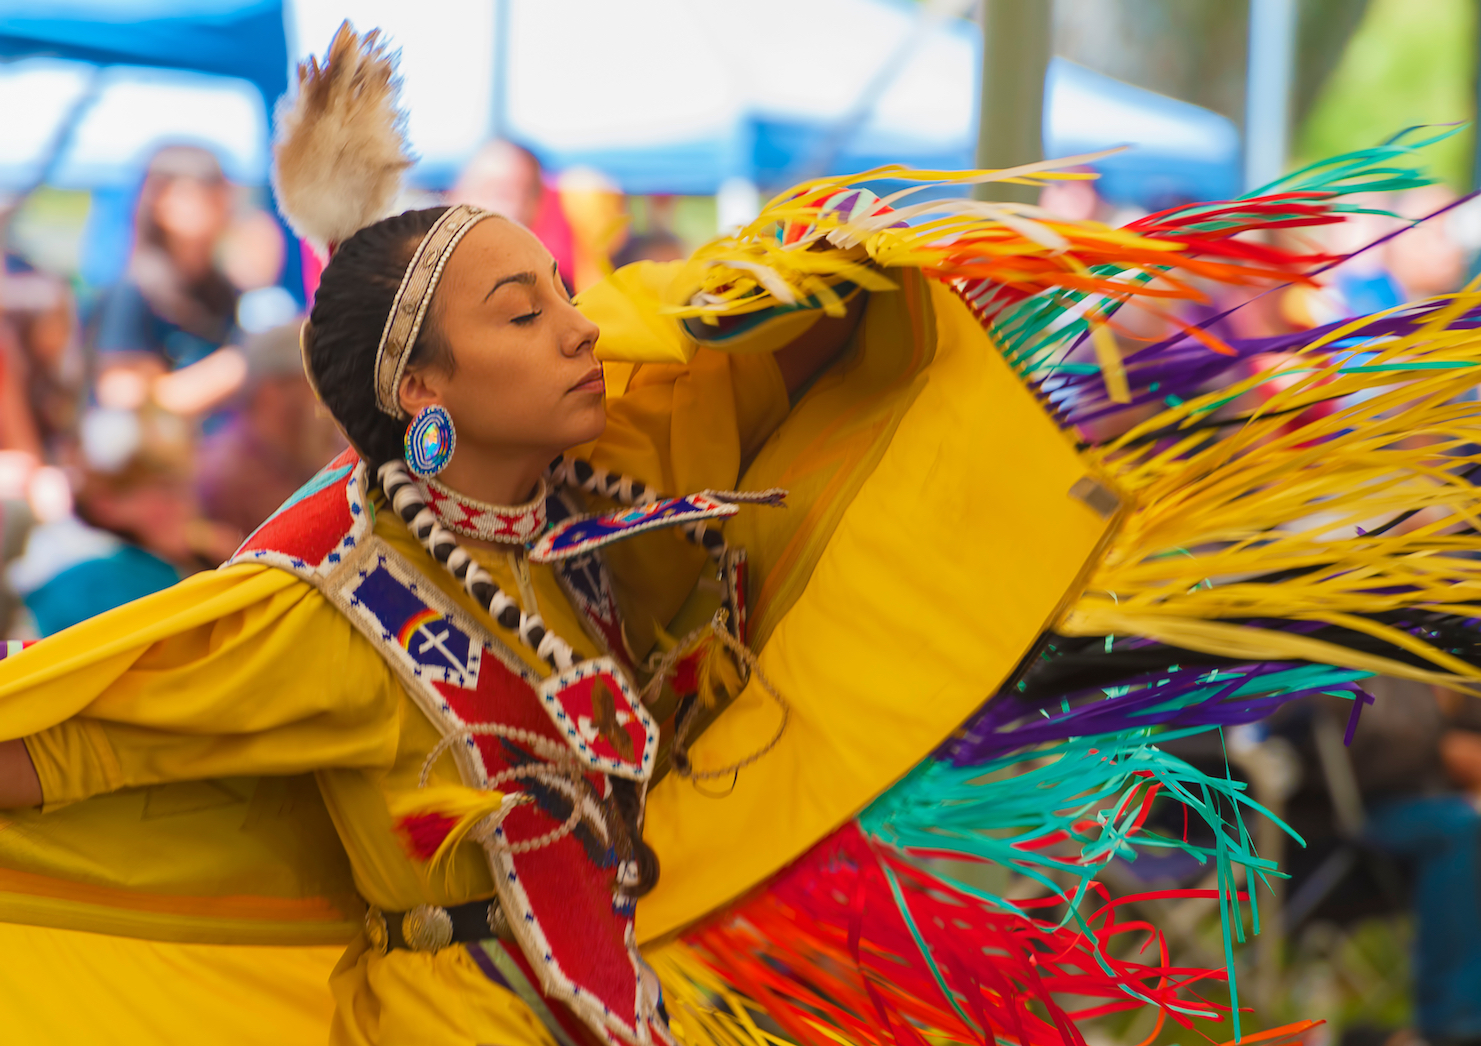 A look at the nature of native ceremonies and how they've been mixed with Catholicism and other Christian denominations.